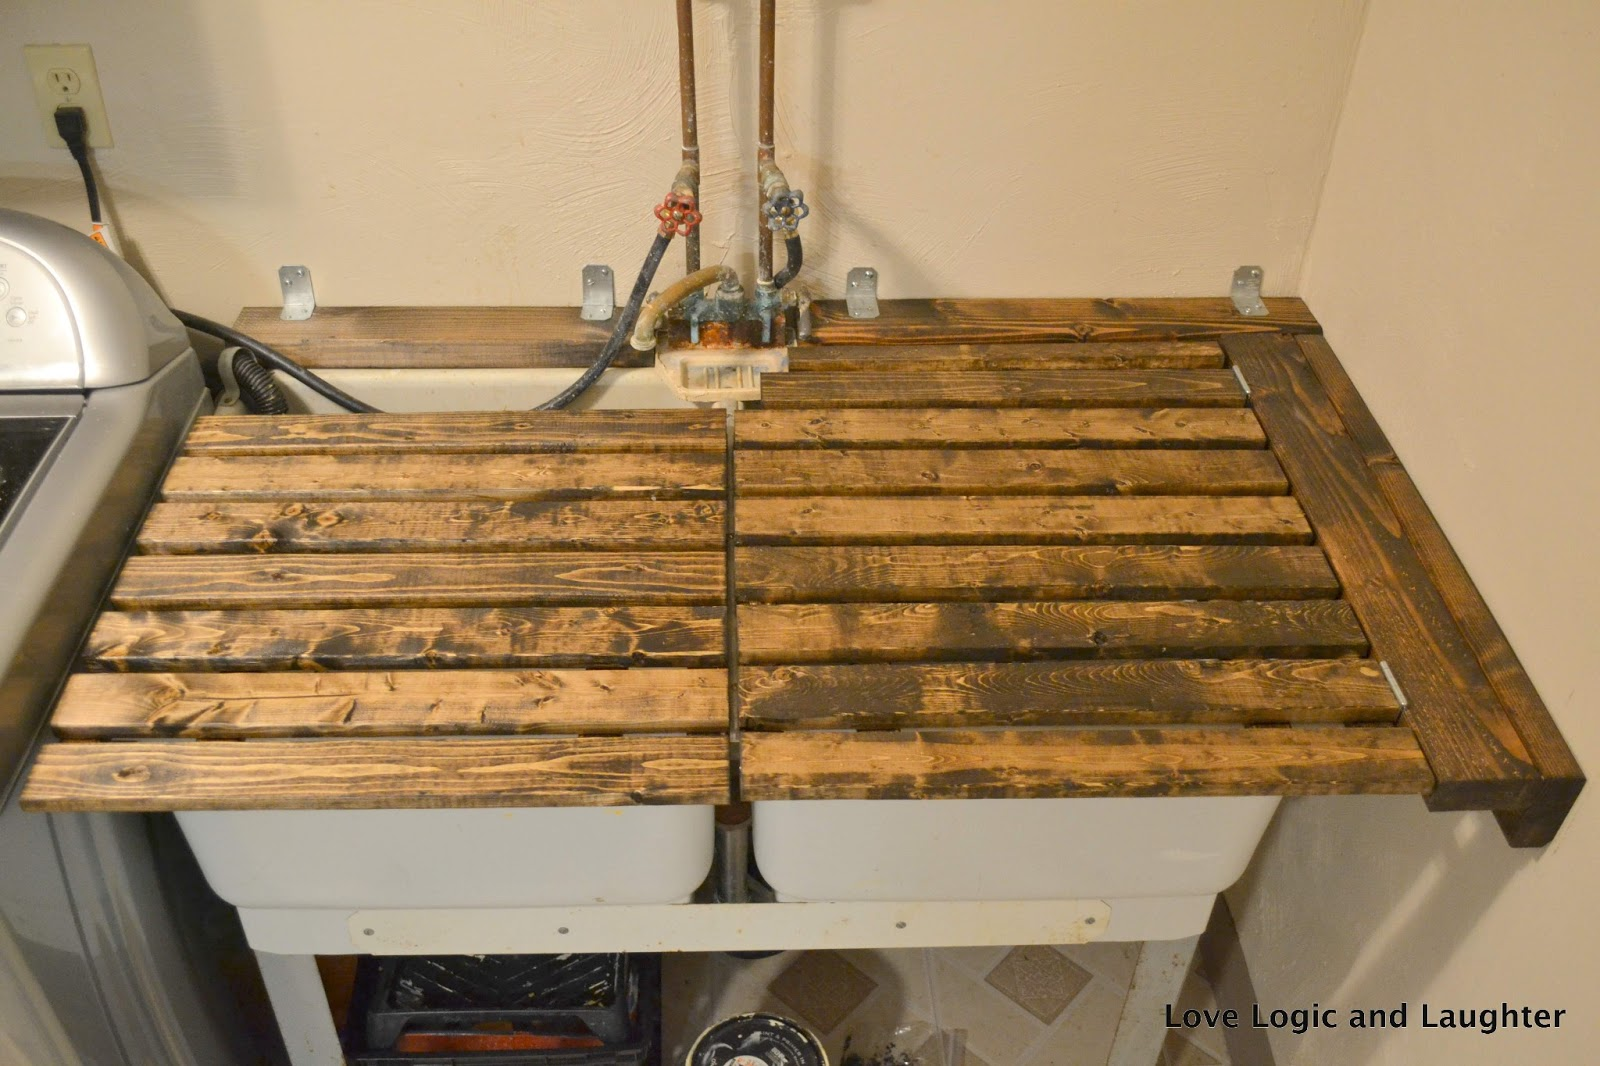 Here Is A Slideshow Of Pictures Showing How The Utility Sink Cover Moves From Counter E To Workable